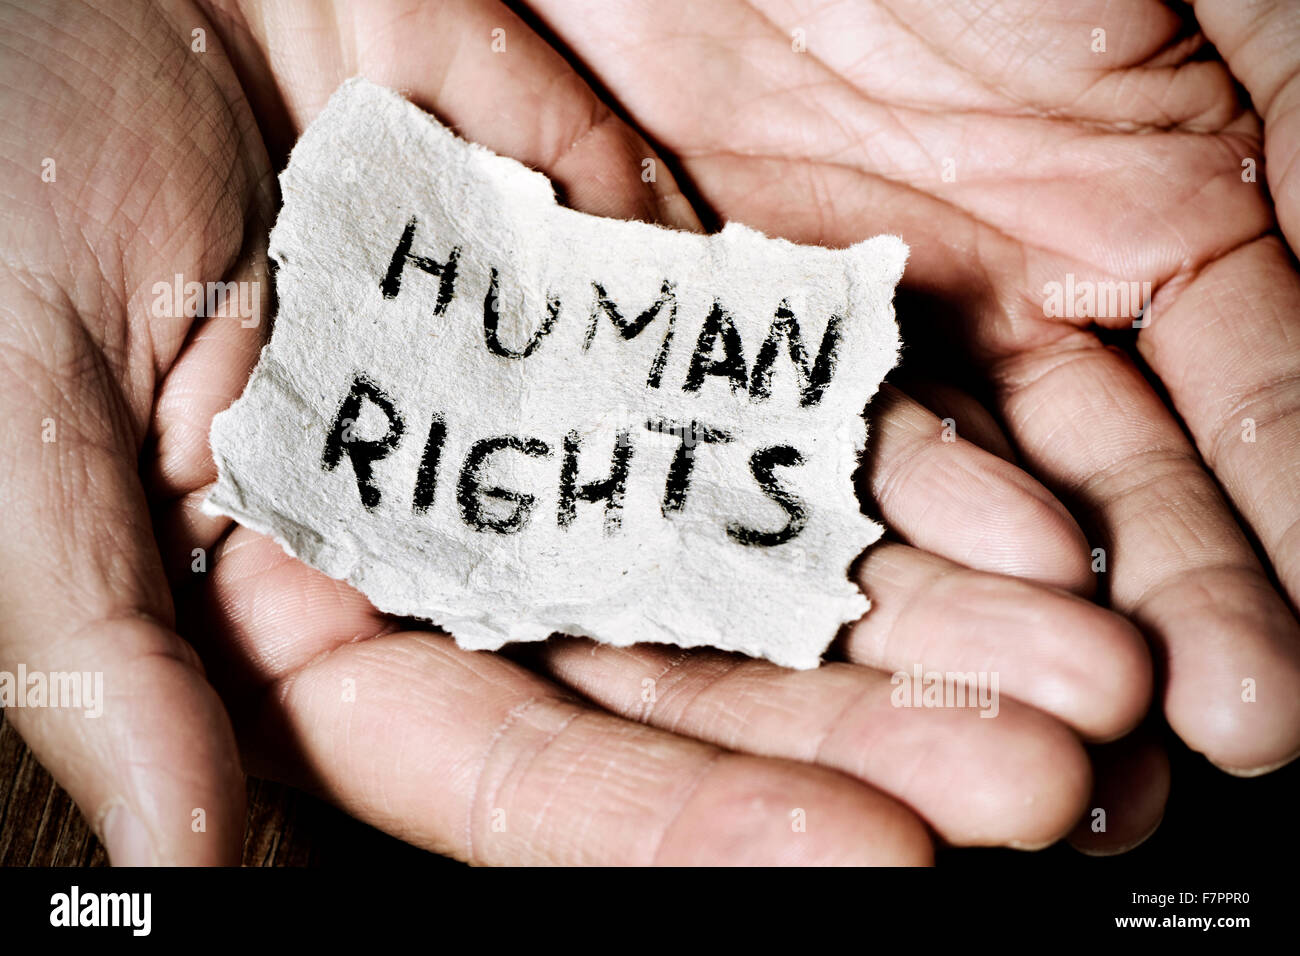 closeup of the hands of a young man with a piece of paper with the text human rights written in it, with a dramatic - Stock Image